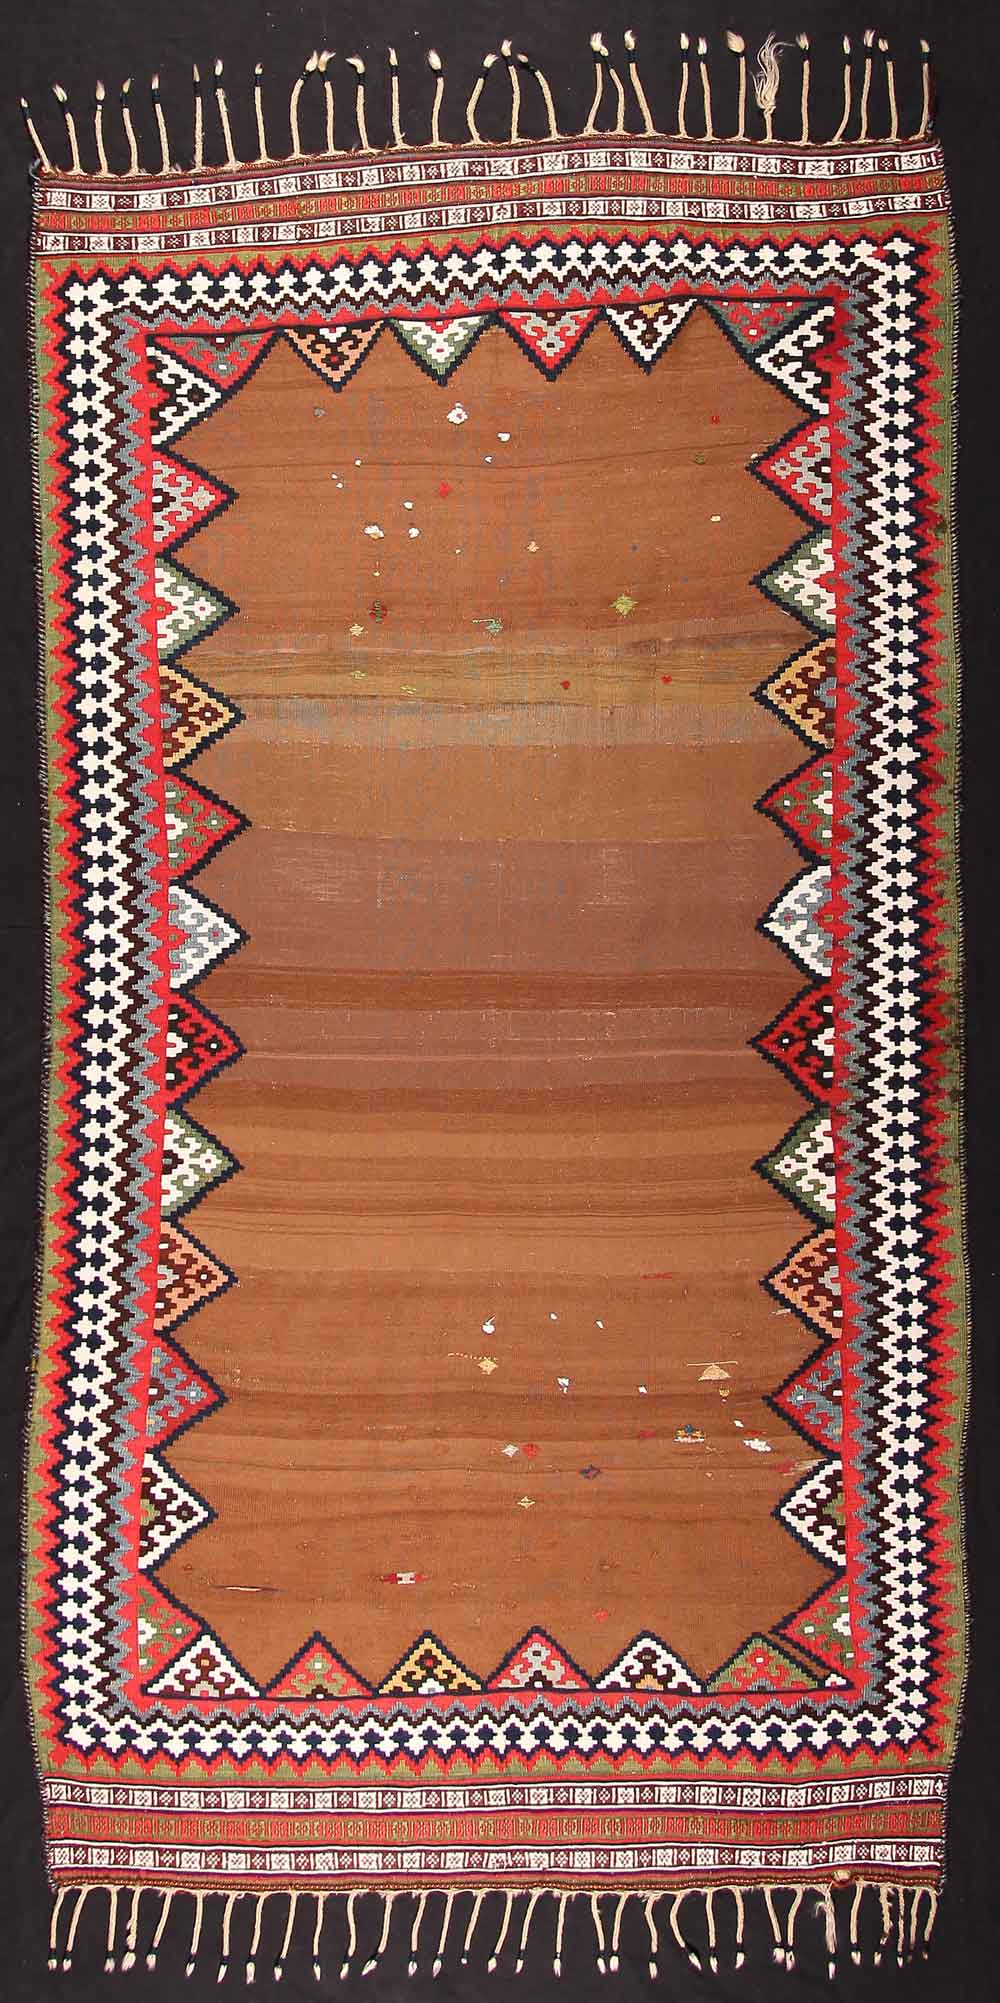 Kilim, late 19th century South-Persia, Fars region, Ghashghai nomads 154 x 280 cm. Neiriz Collection on view in 100 Kilims at Halle